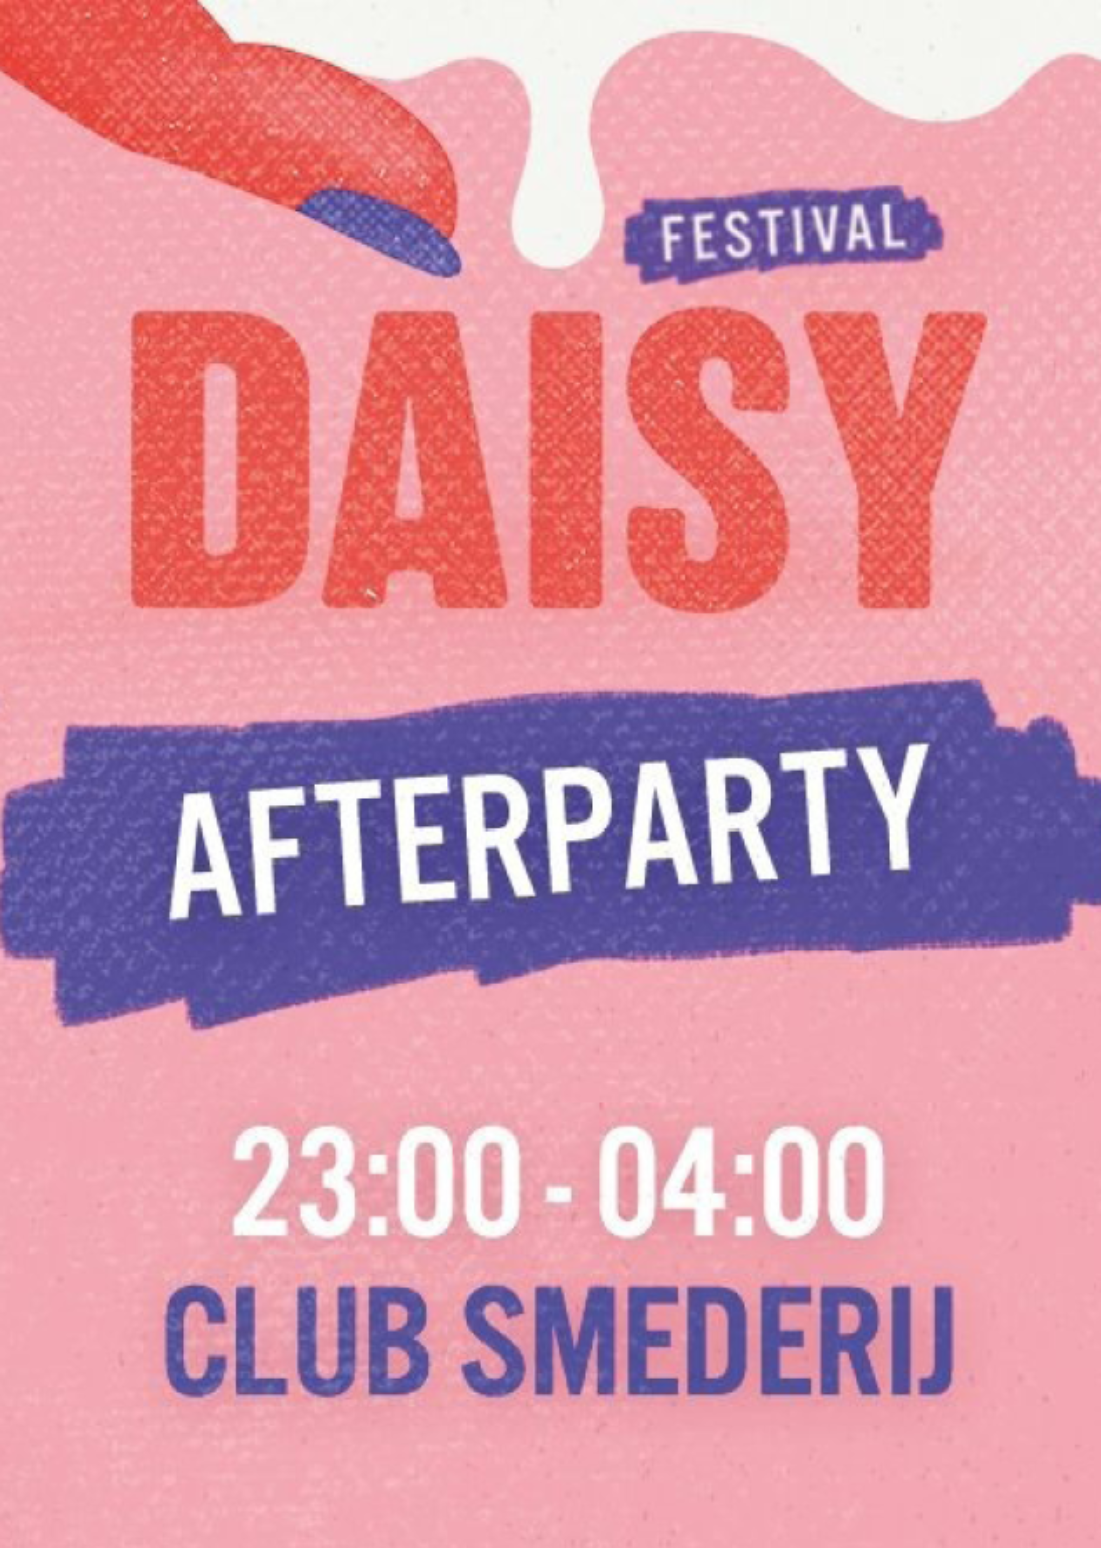 Daisy Festival Afterparty